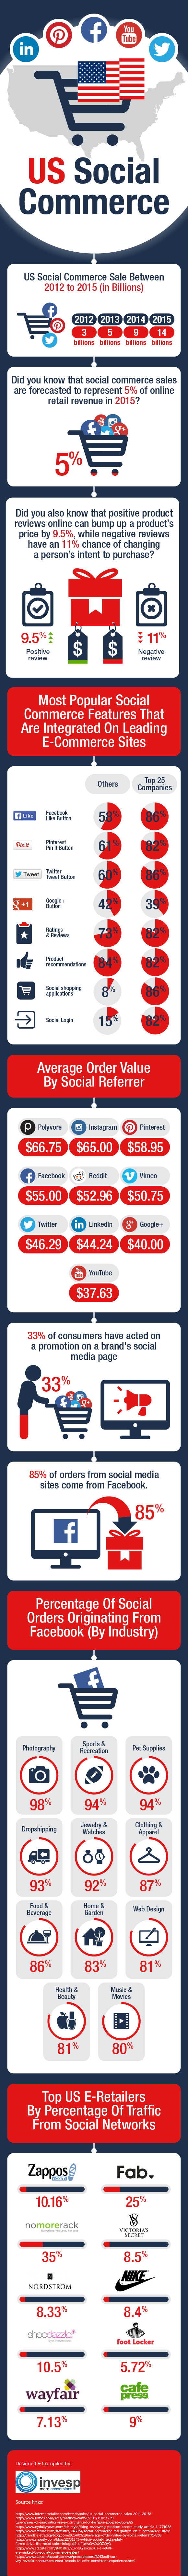 US Social Commerce - Statistics and Trends